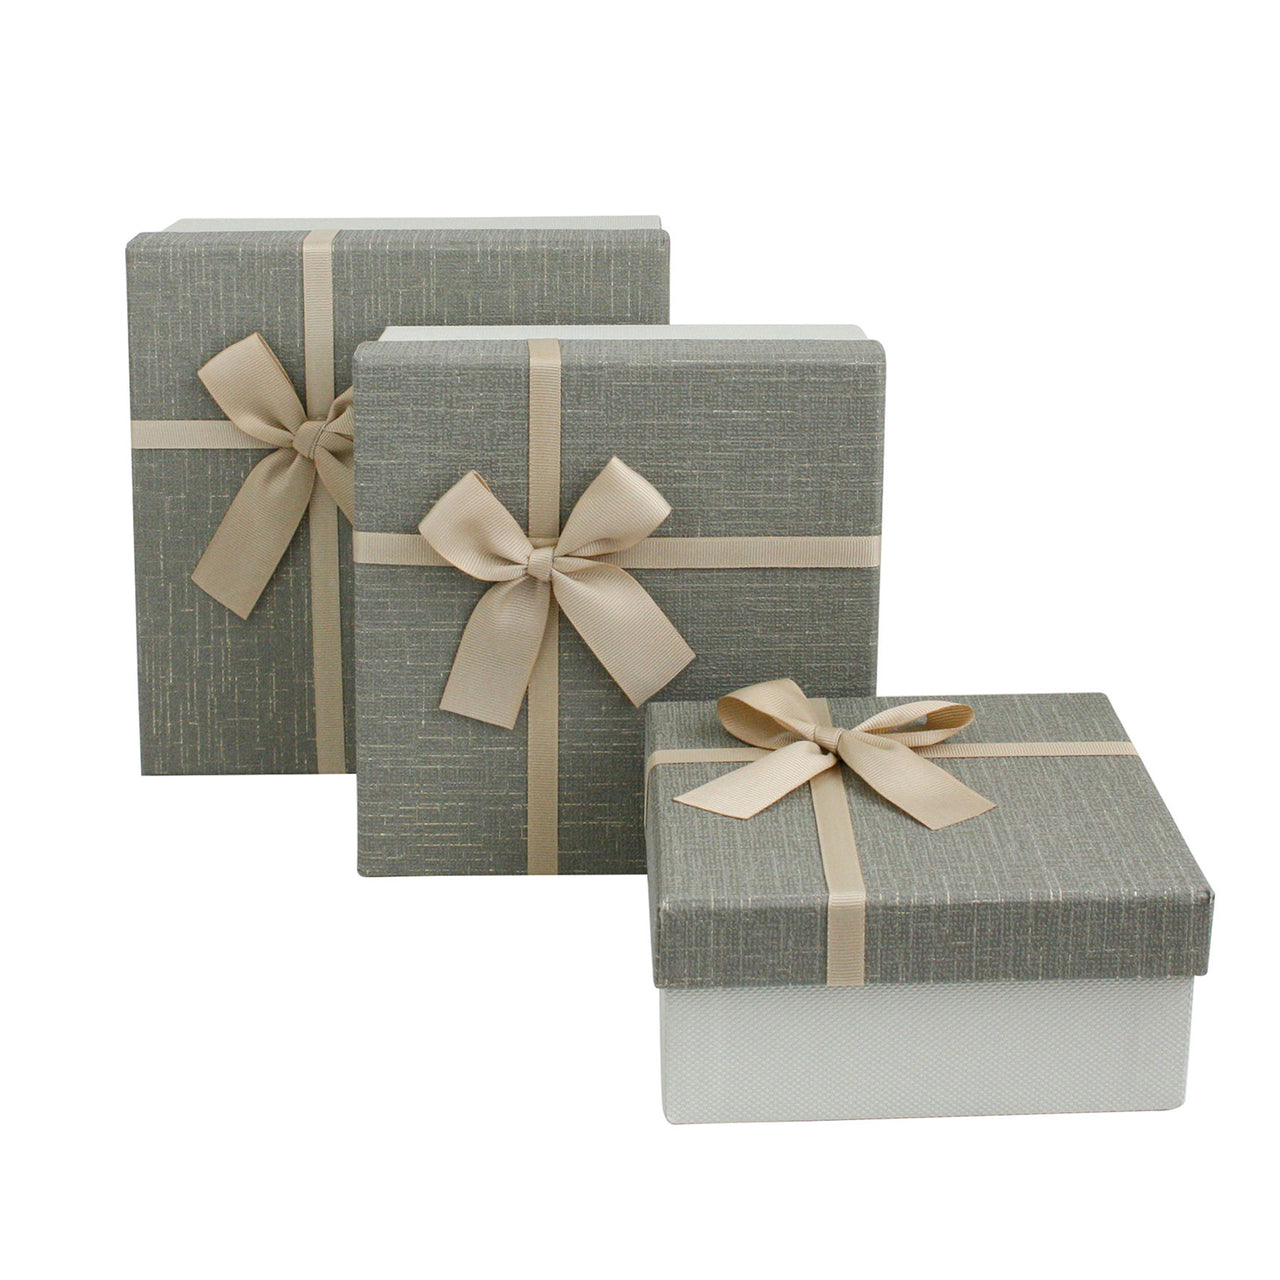 Light Khaki / Khaki Square Gift Box - Set Of 3